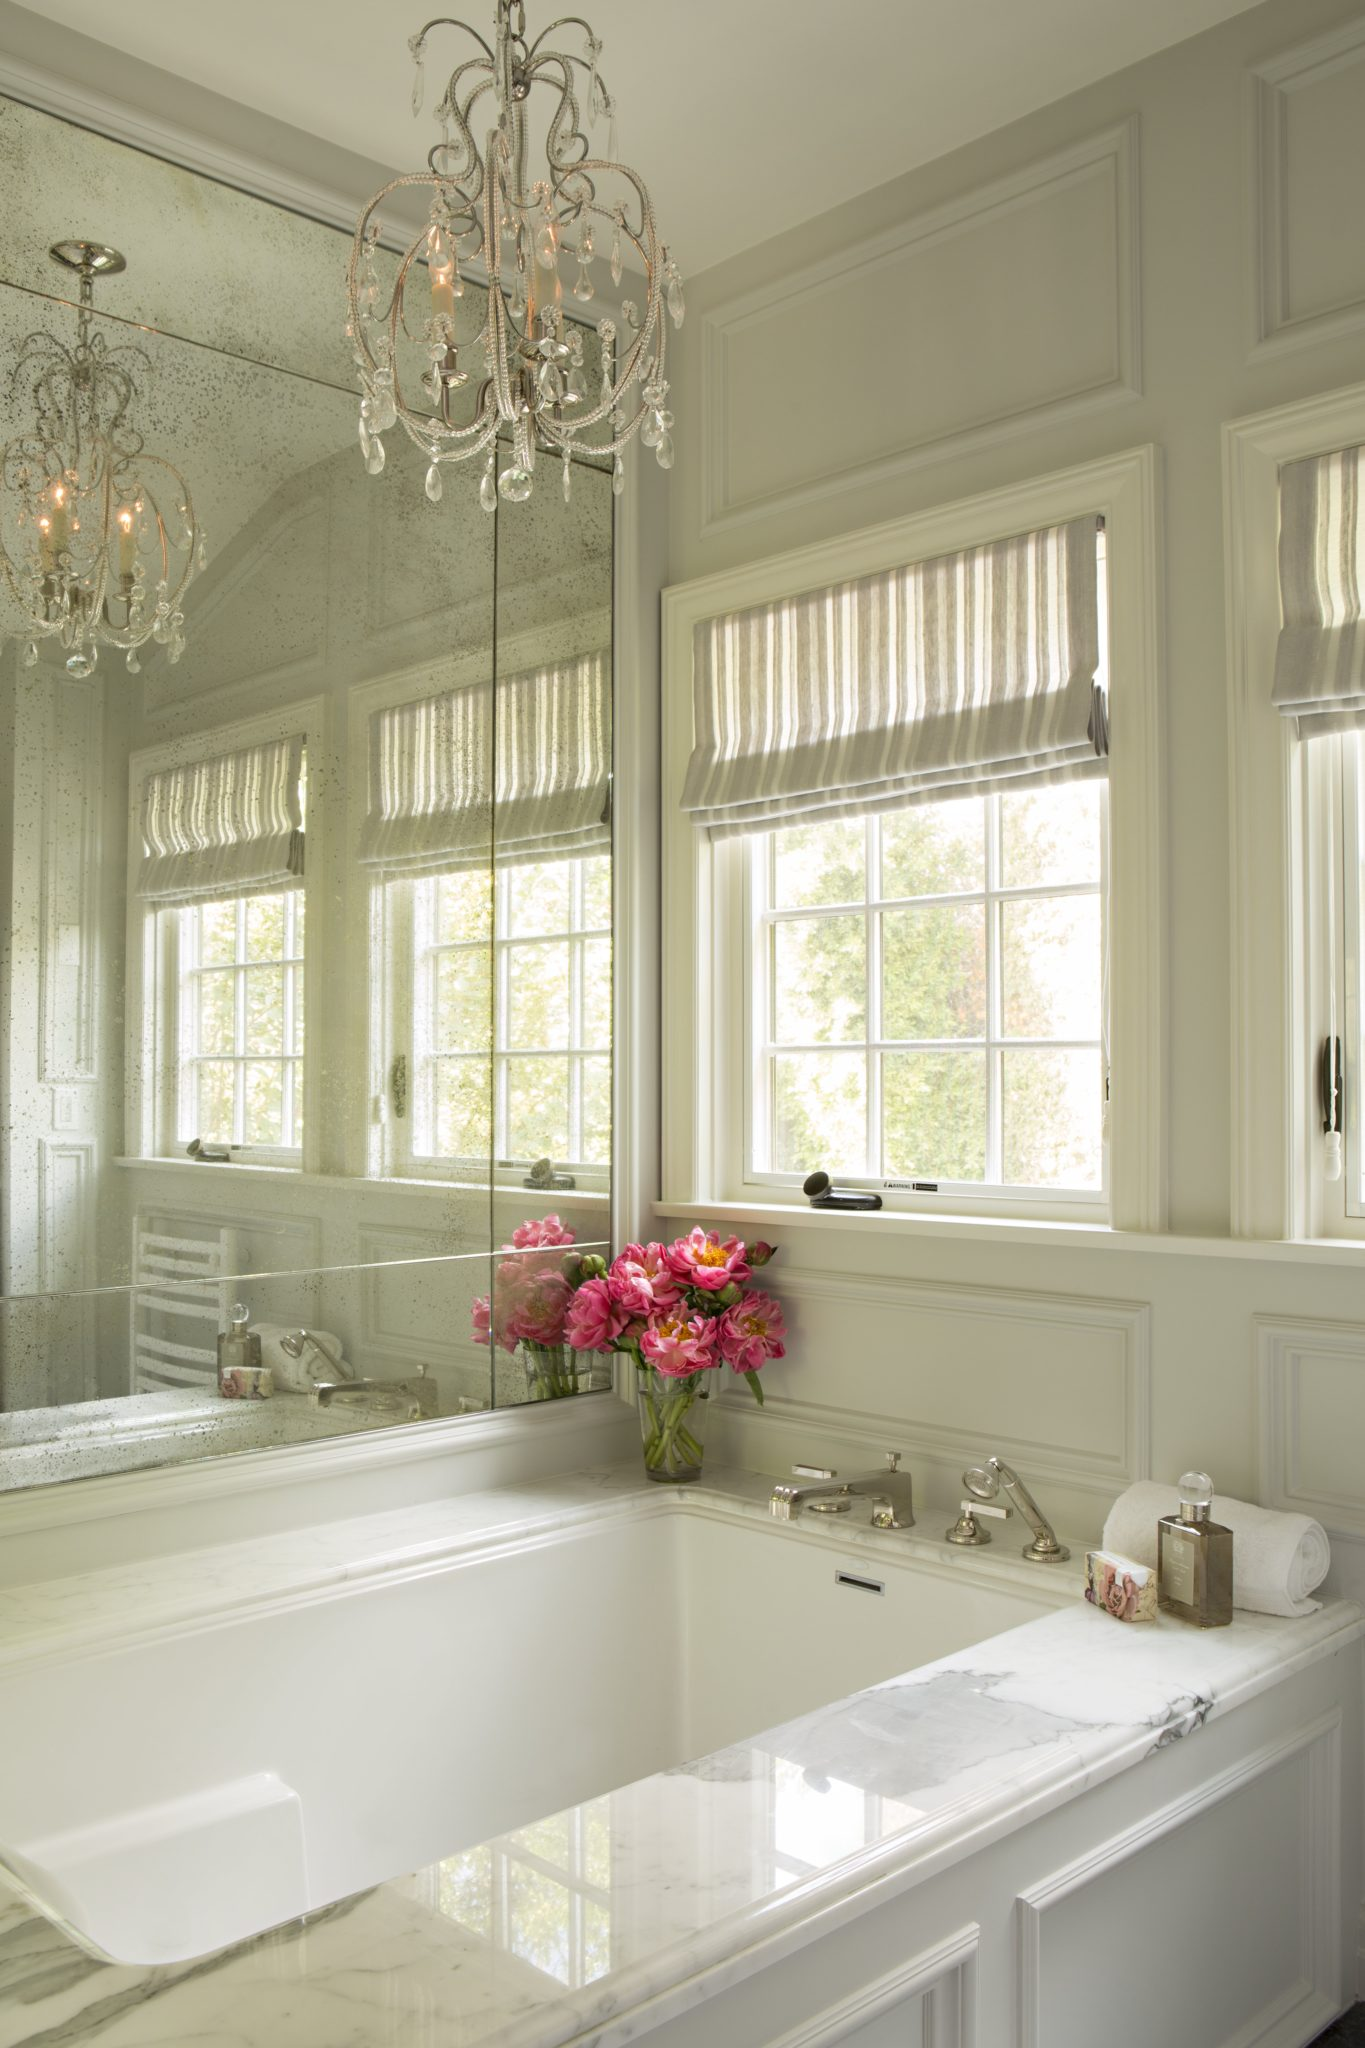 Master Bathroom with antique mirror and white marble details by Jackson Paige Interiors